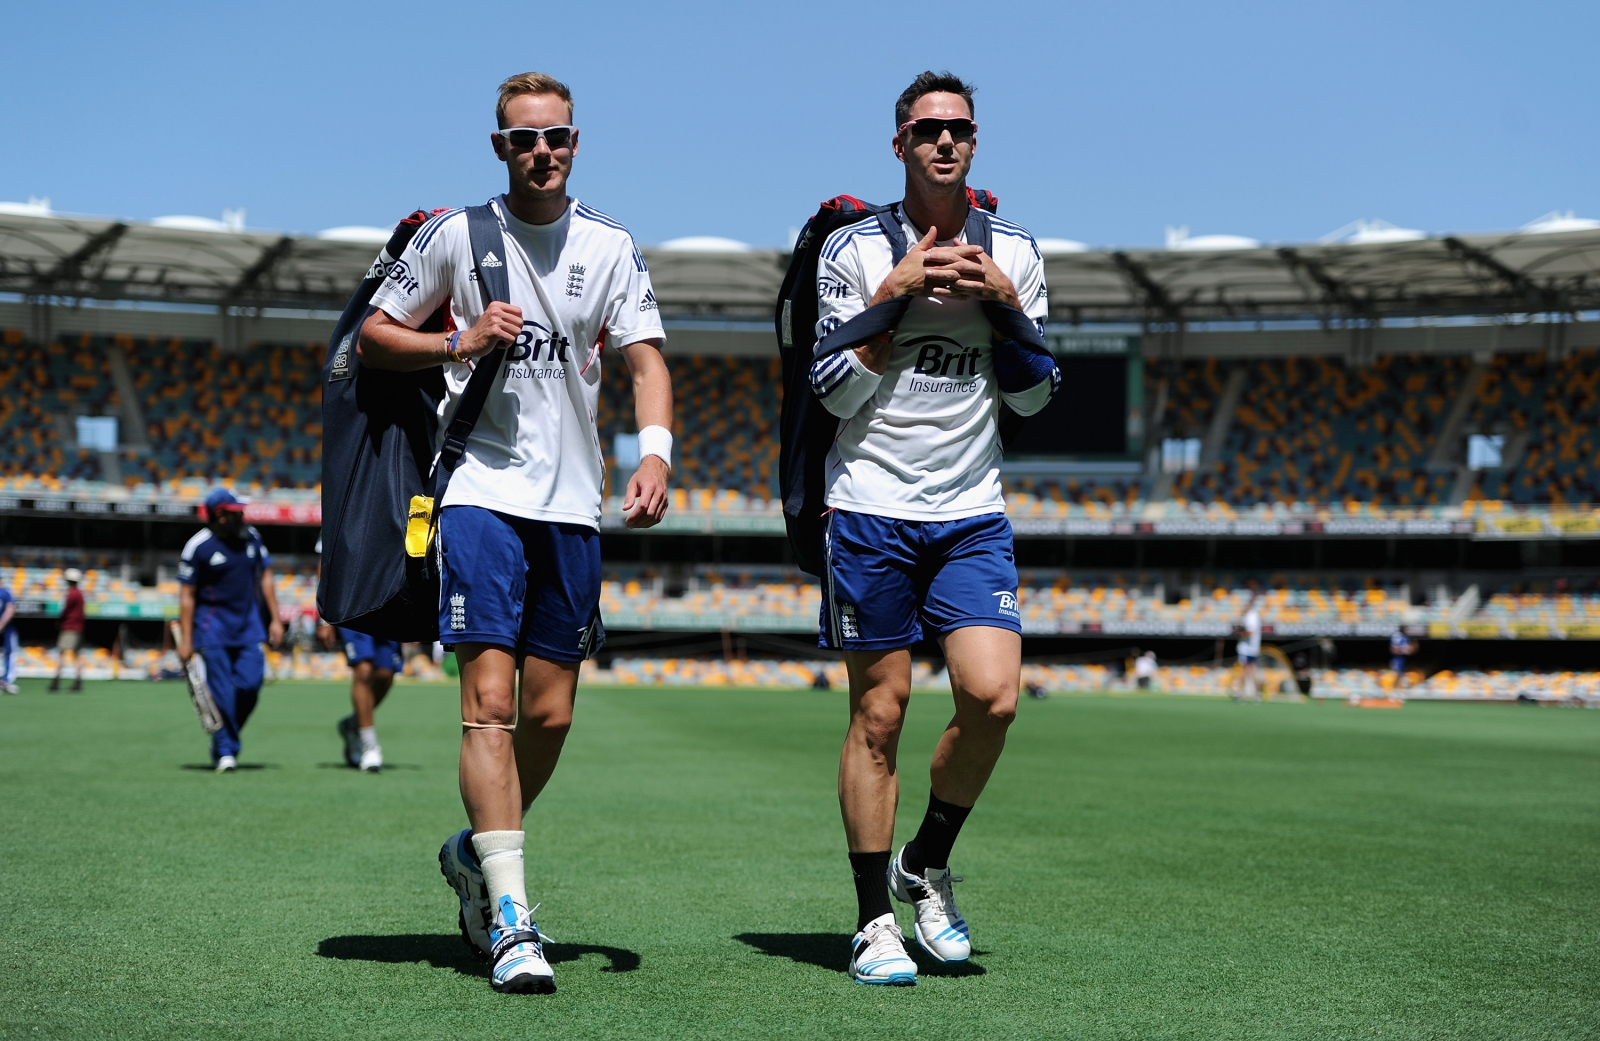 Broad and Pietersen